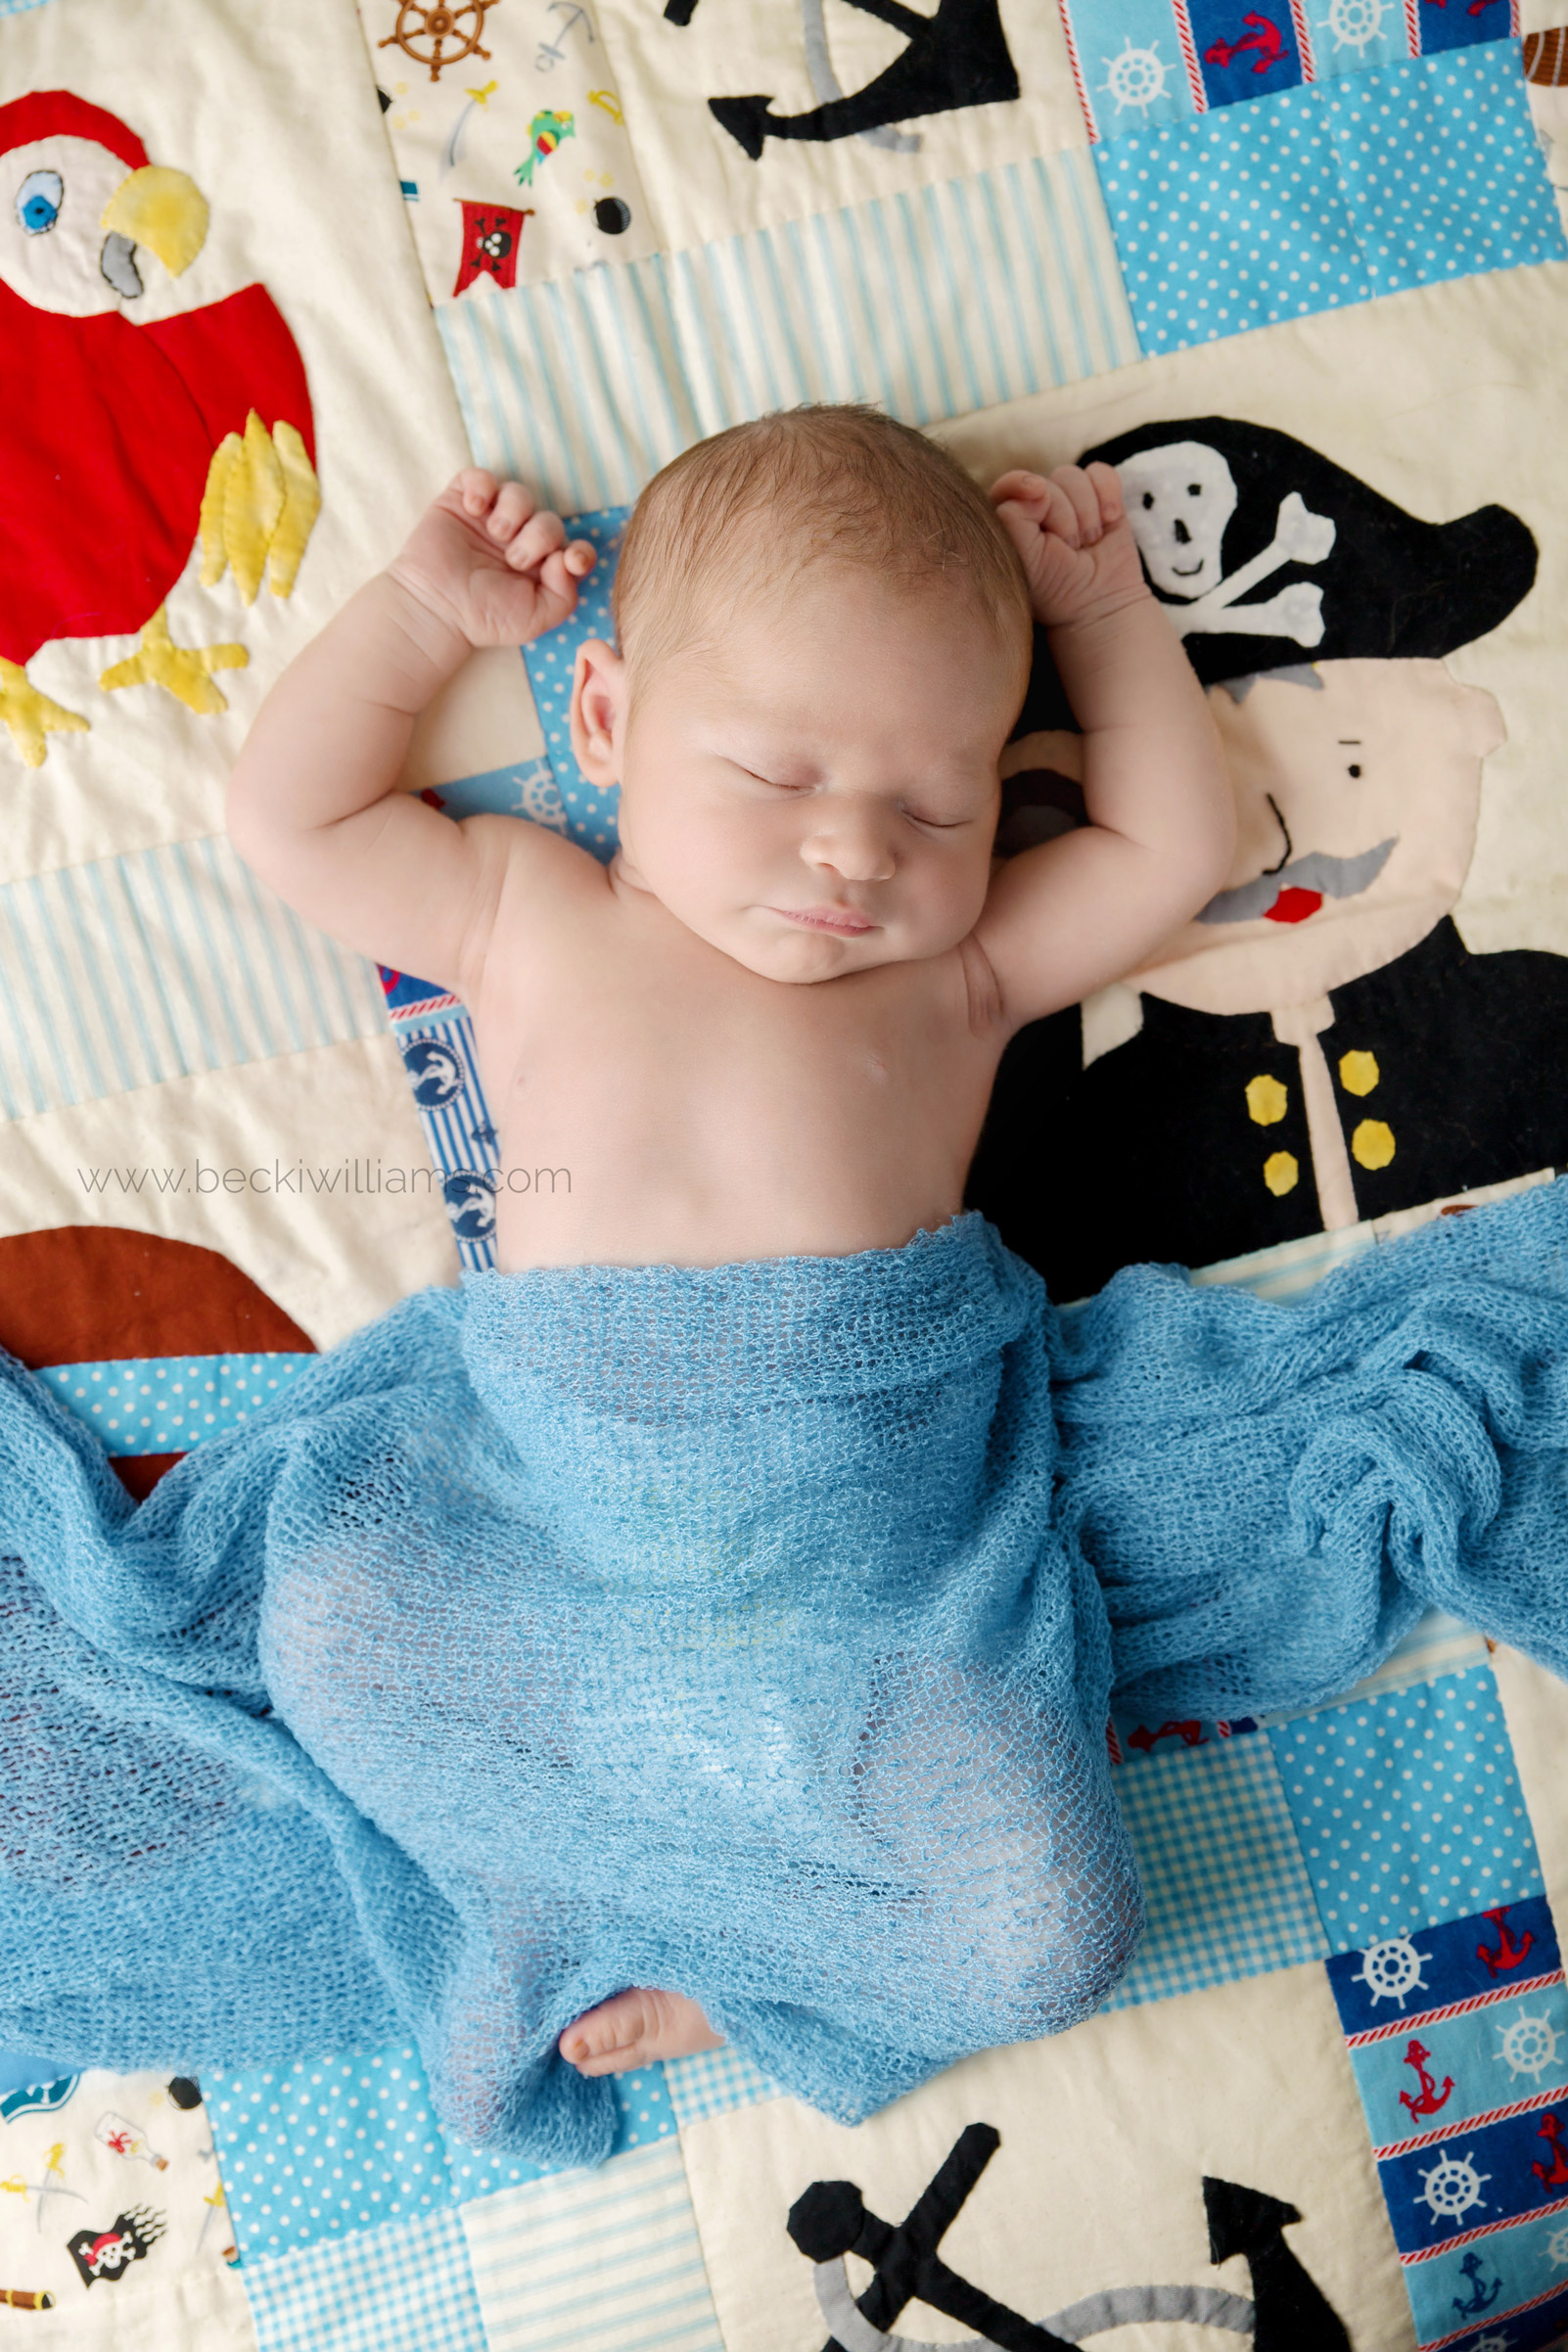 natural newborn photo of a baby laying on a pirate themed quilt, covered in a blue blanket